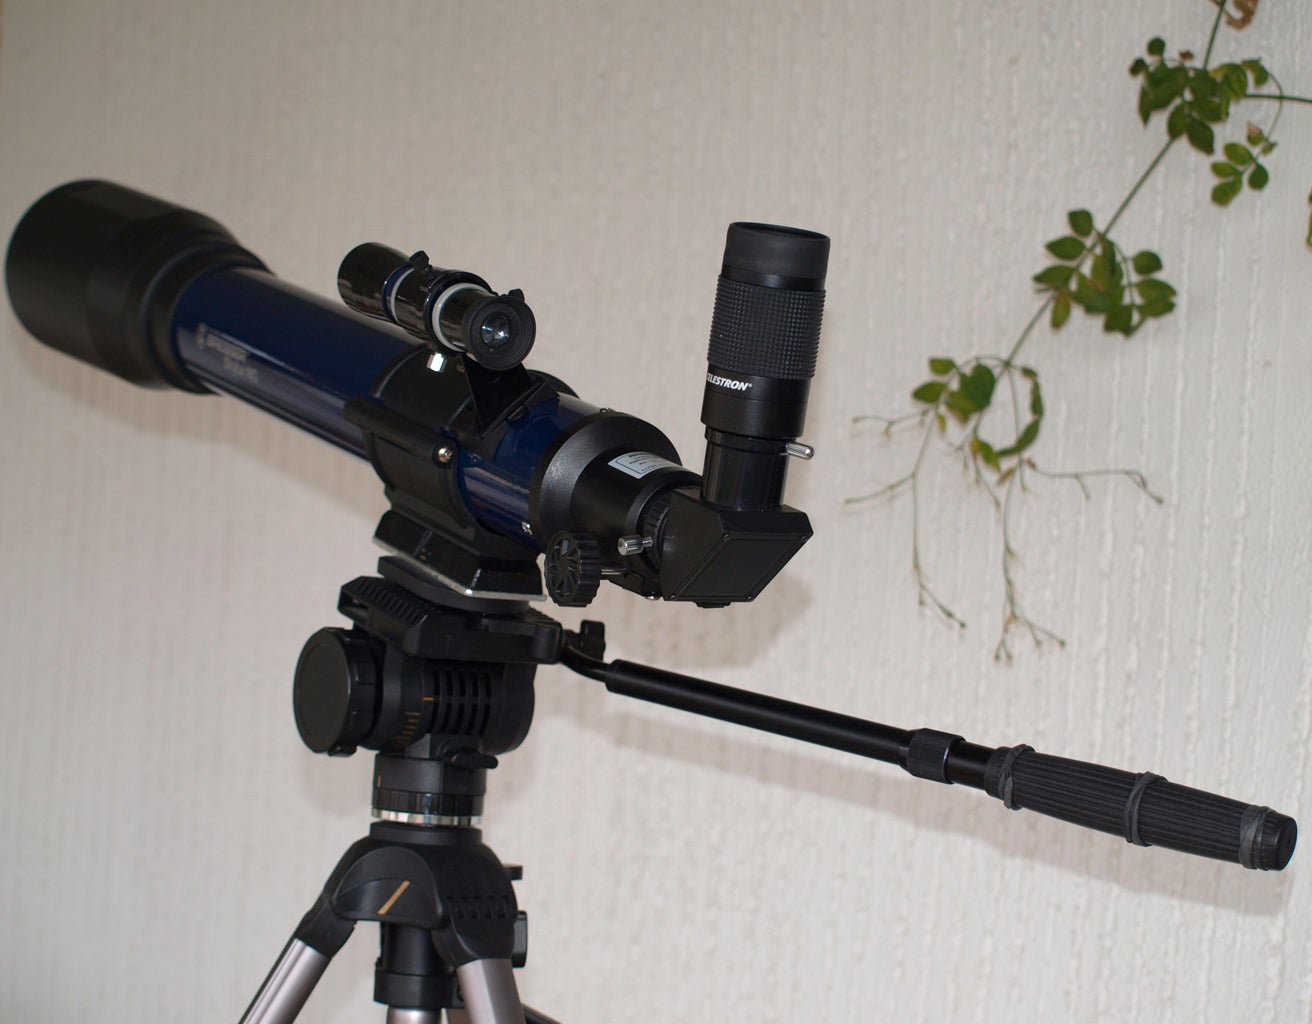 (8) Mount It on a Photographic Tripod